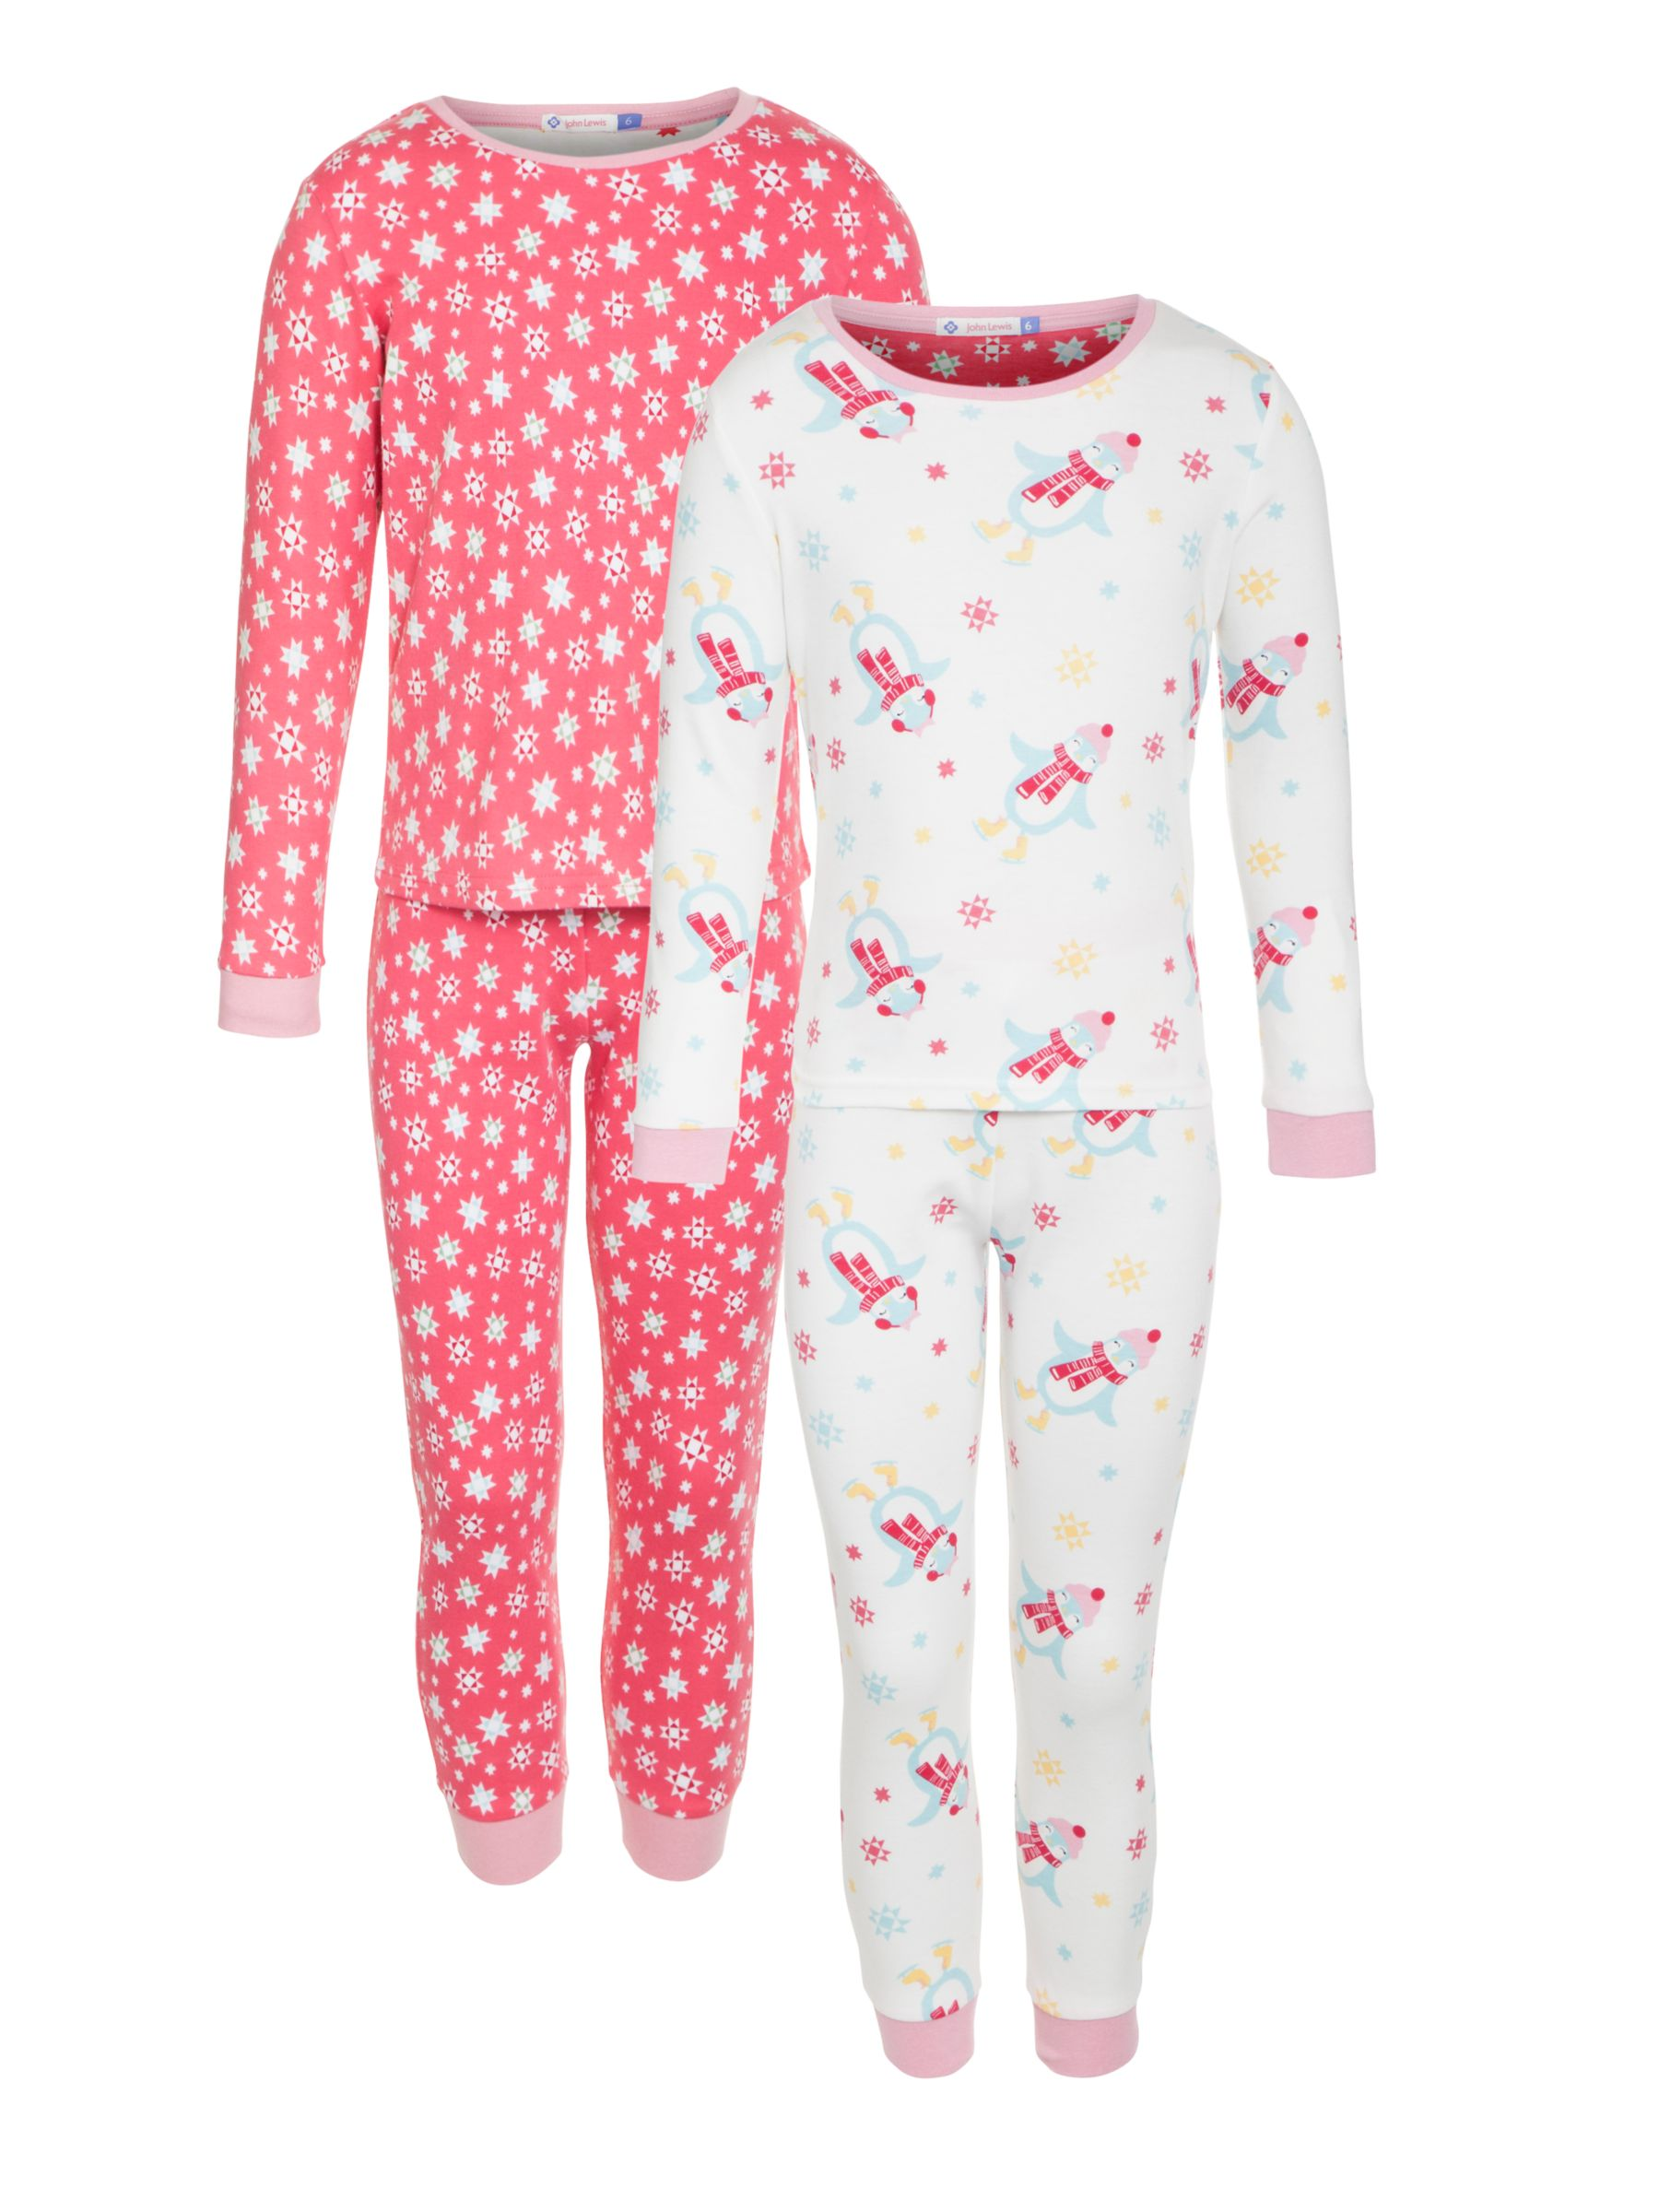 John Lewis Girl Penguin Snowflake Pyjamas, Pack of 2, Pink/White